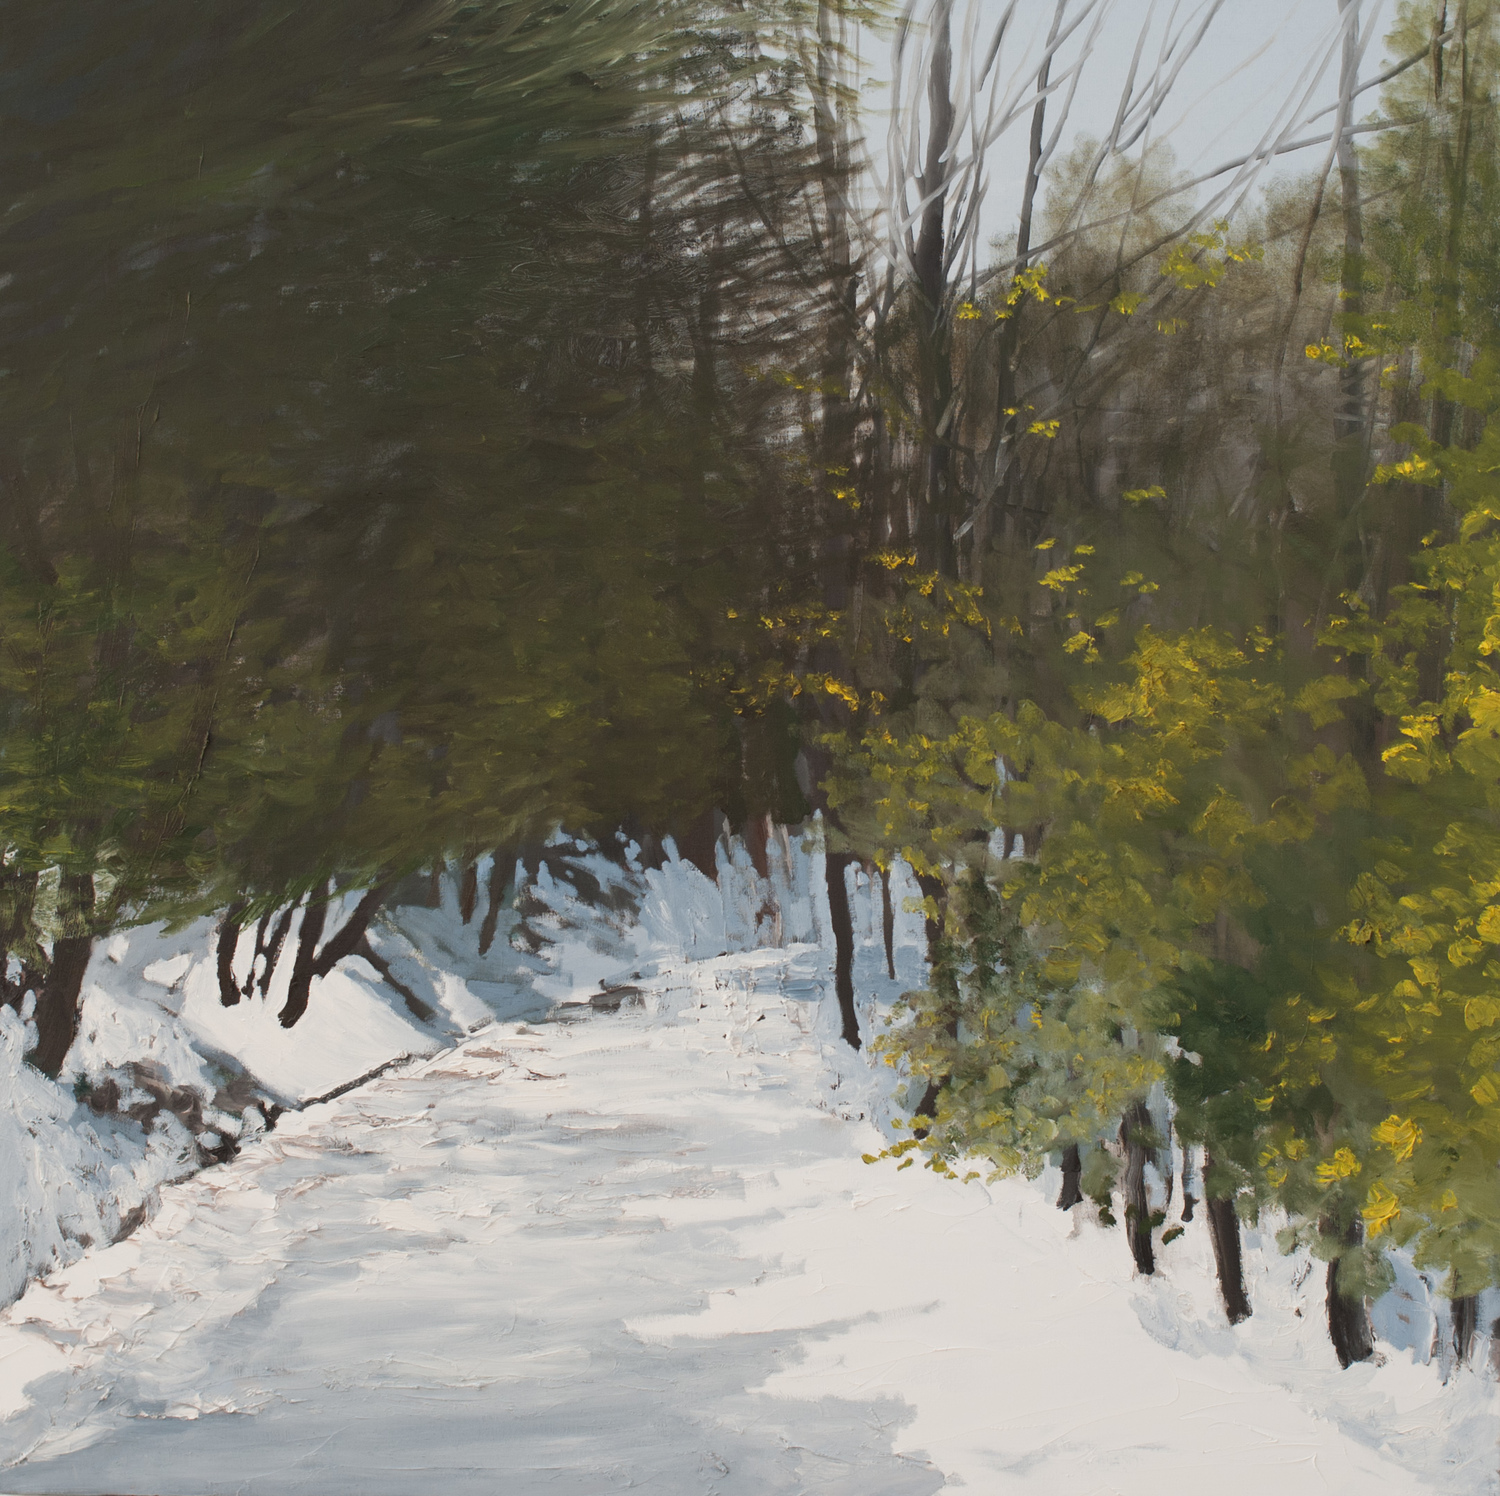 Winter Paths 2014 - Present